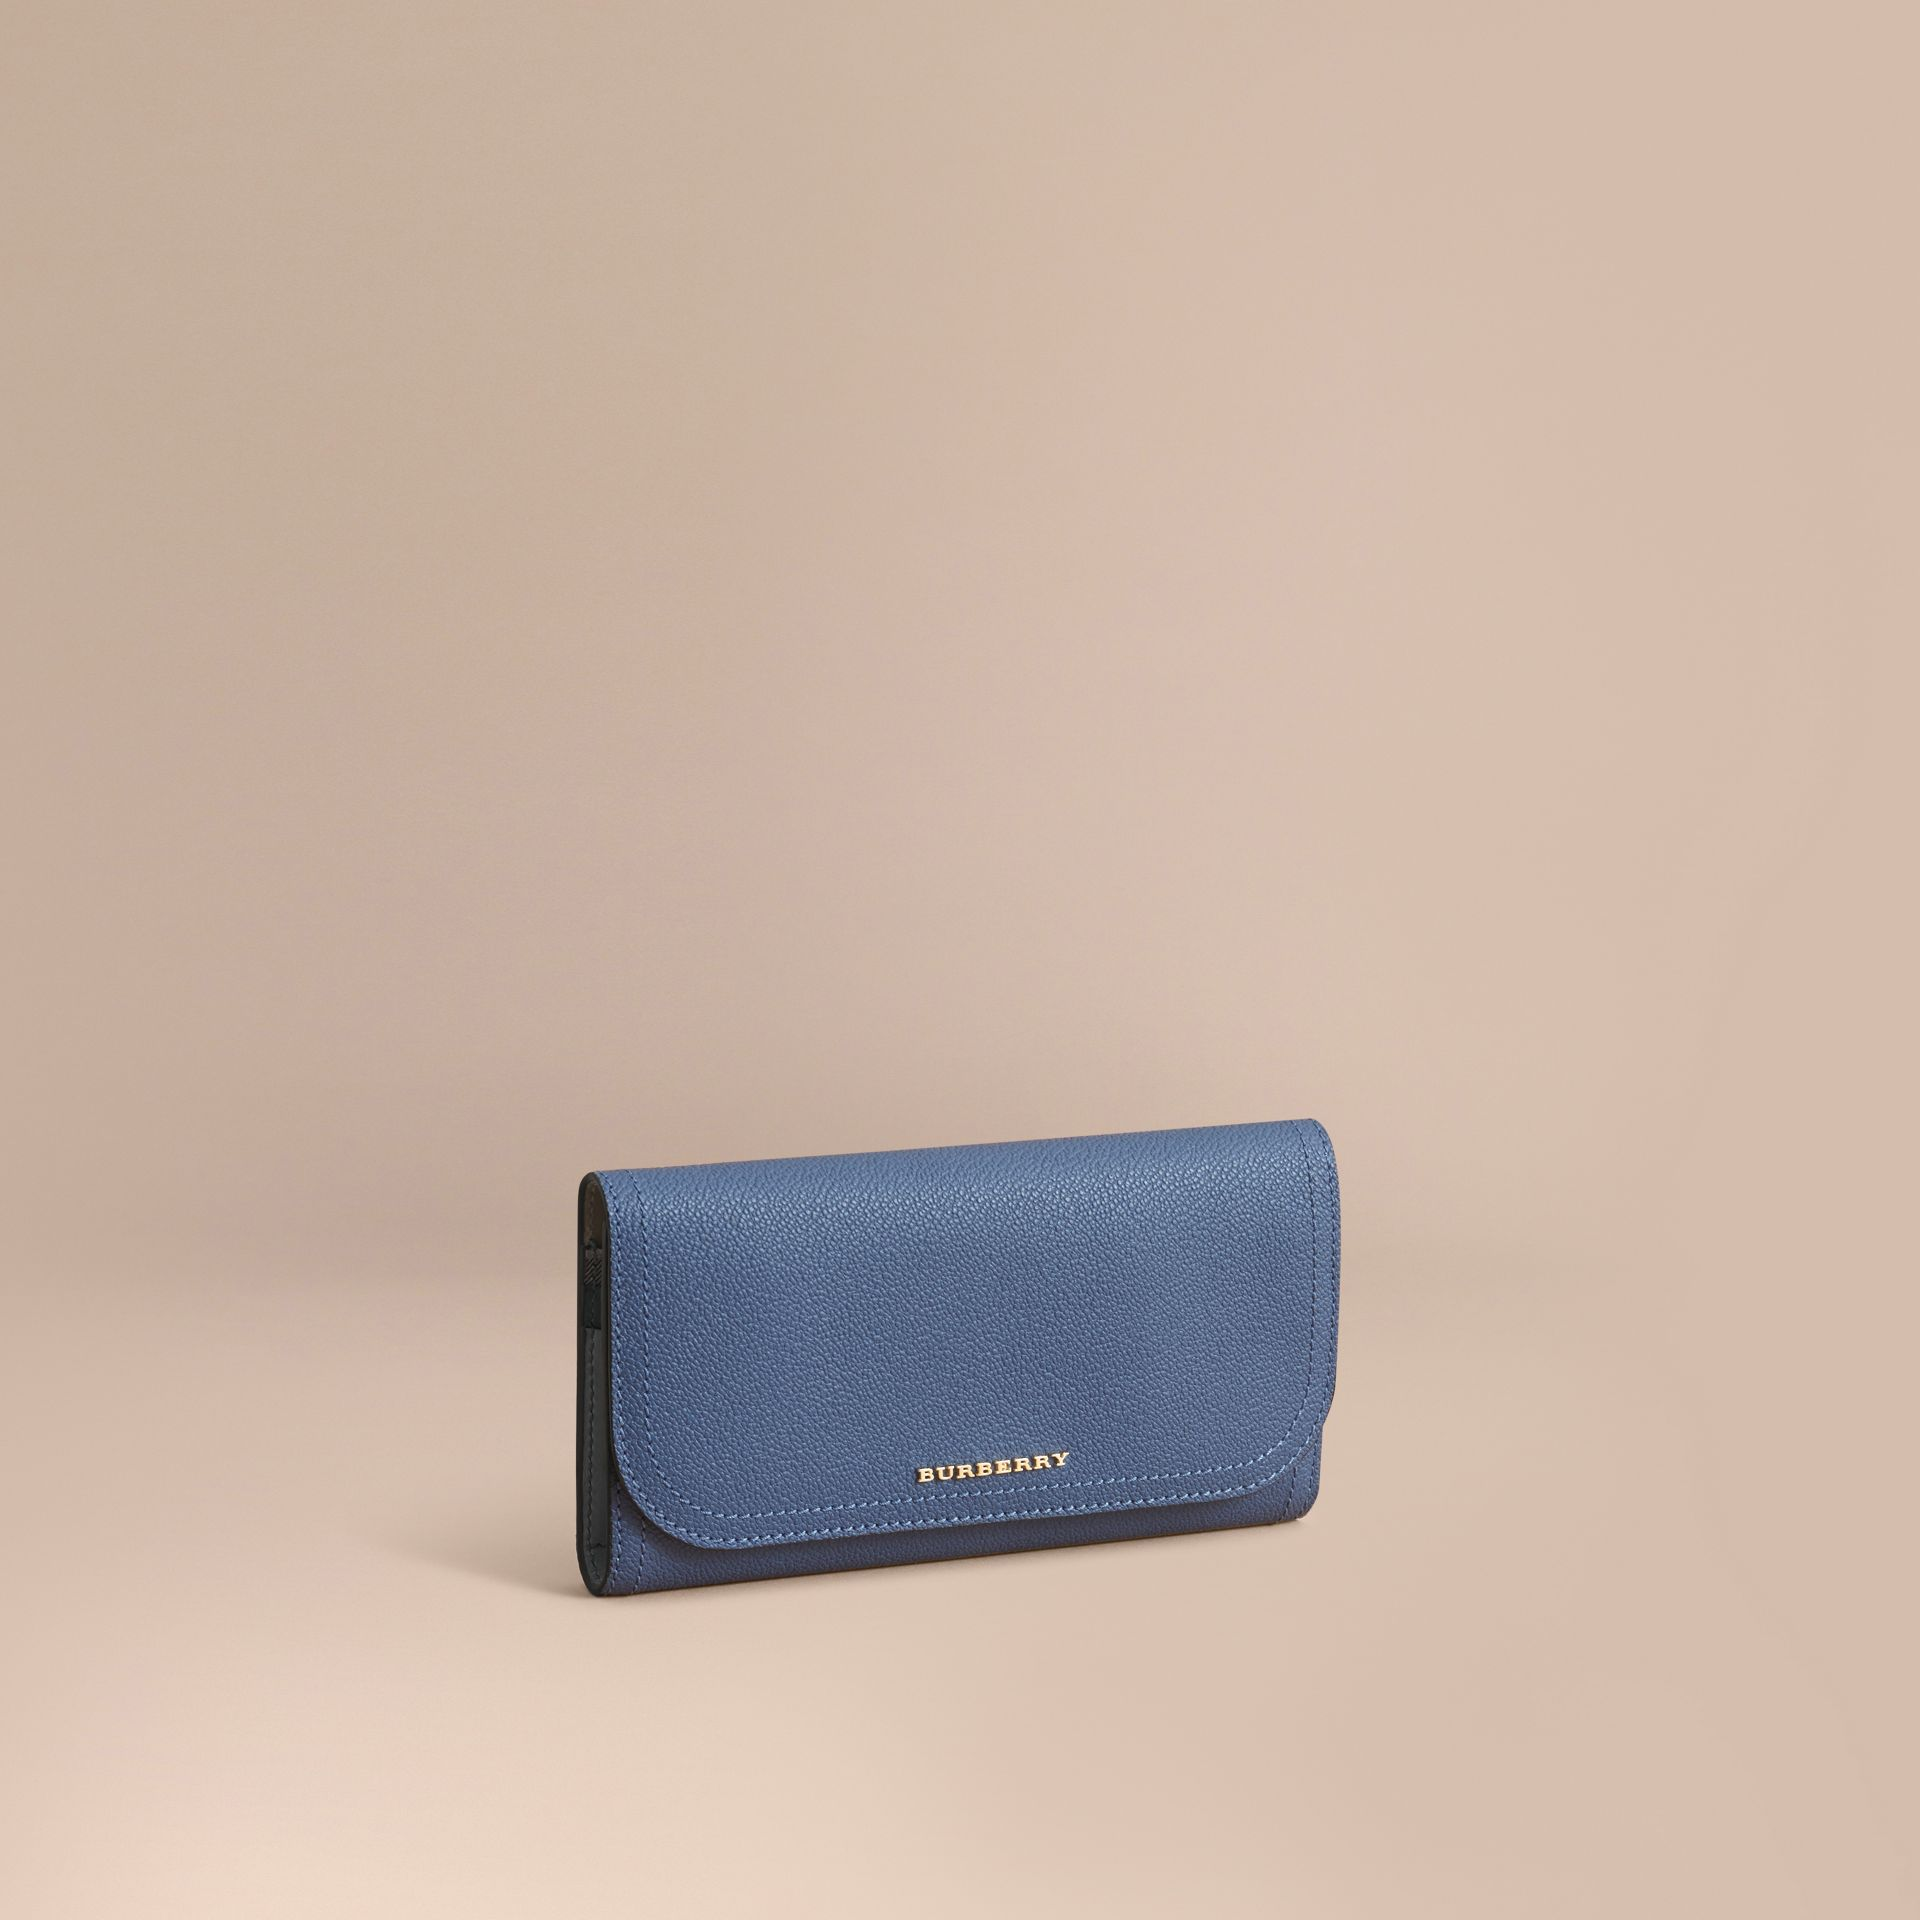 Two-tone Leather Continental Wallet and Coin Case in Steel Blue/multi - Women | Burberry Singapore - gallery image 1